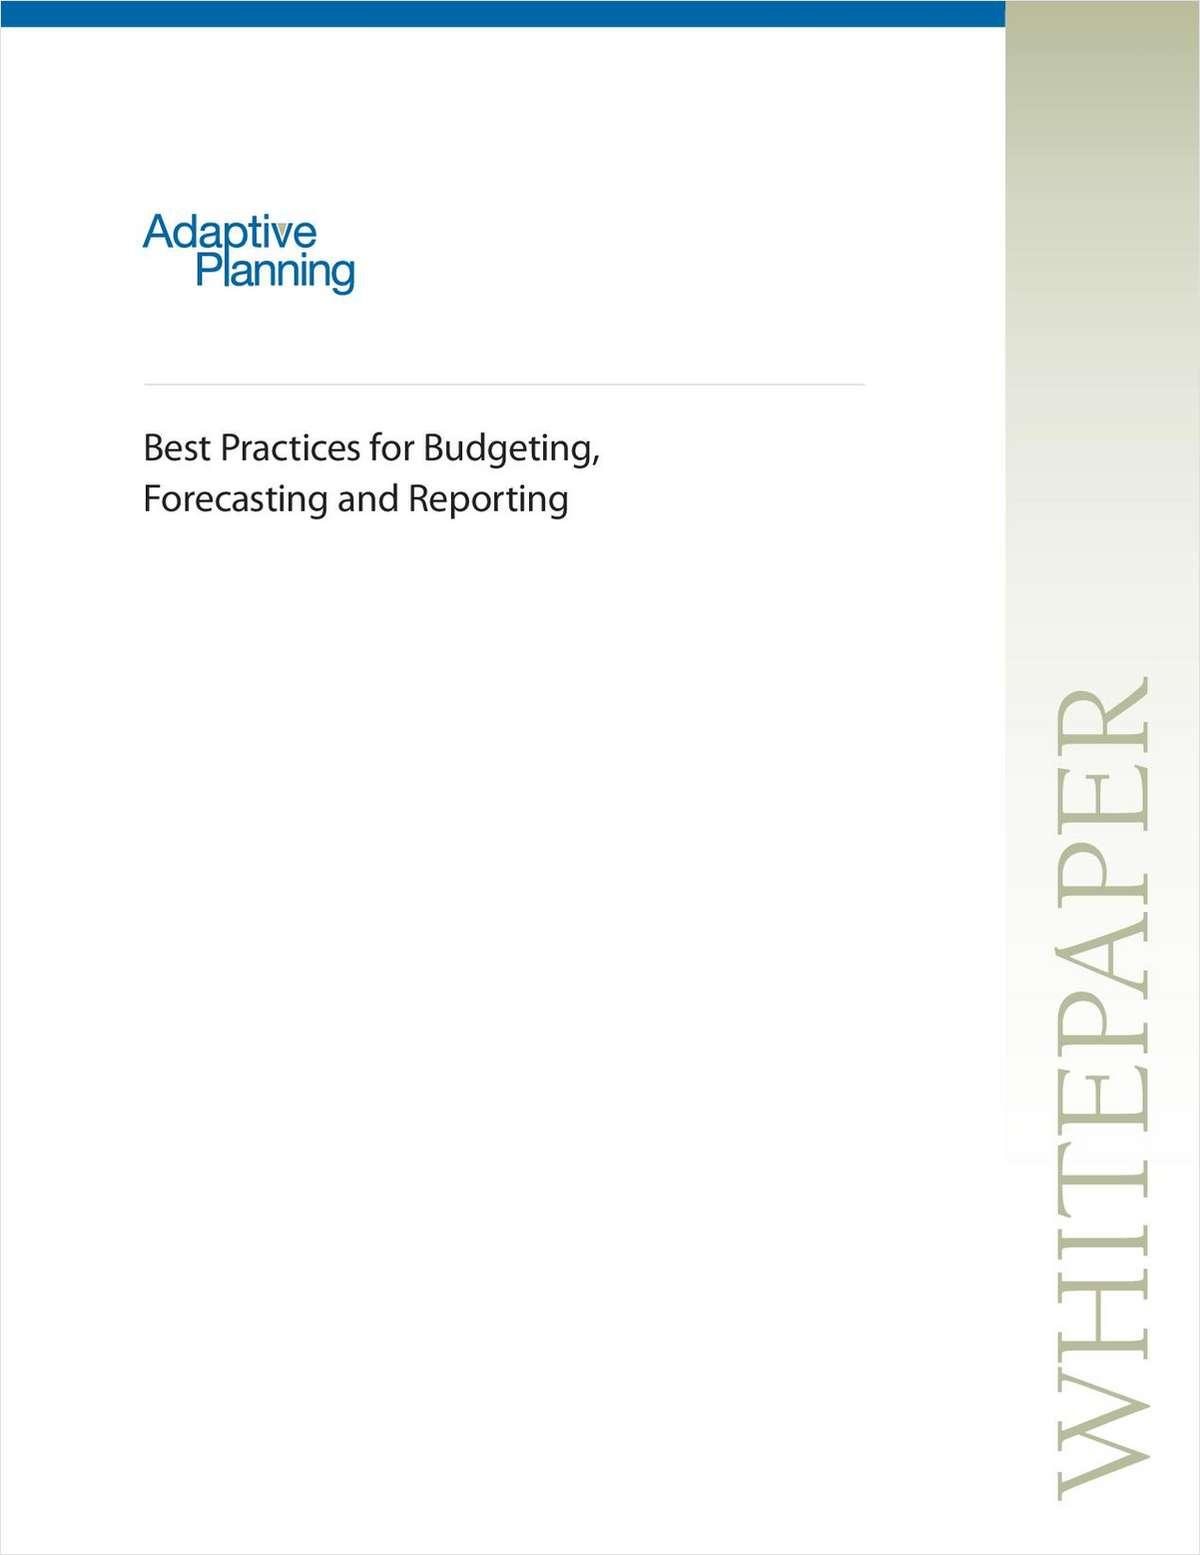 Best Practices for Budgeting, Forecasting and Reporting